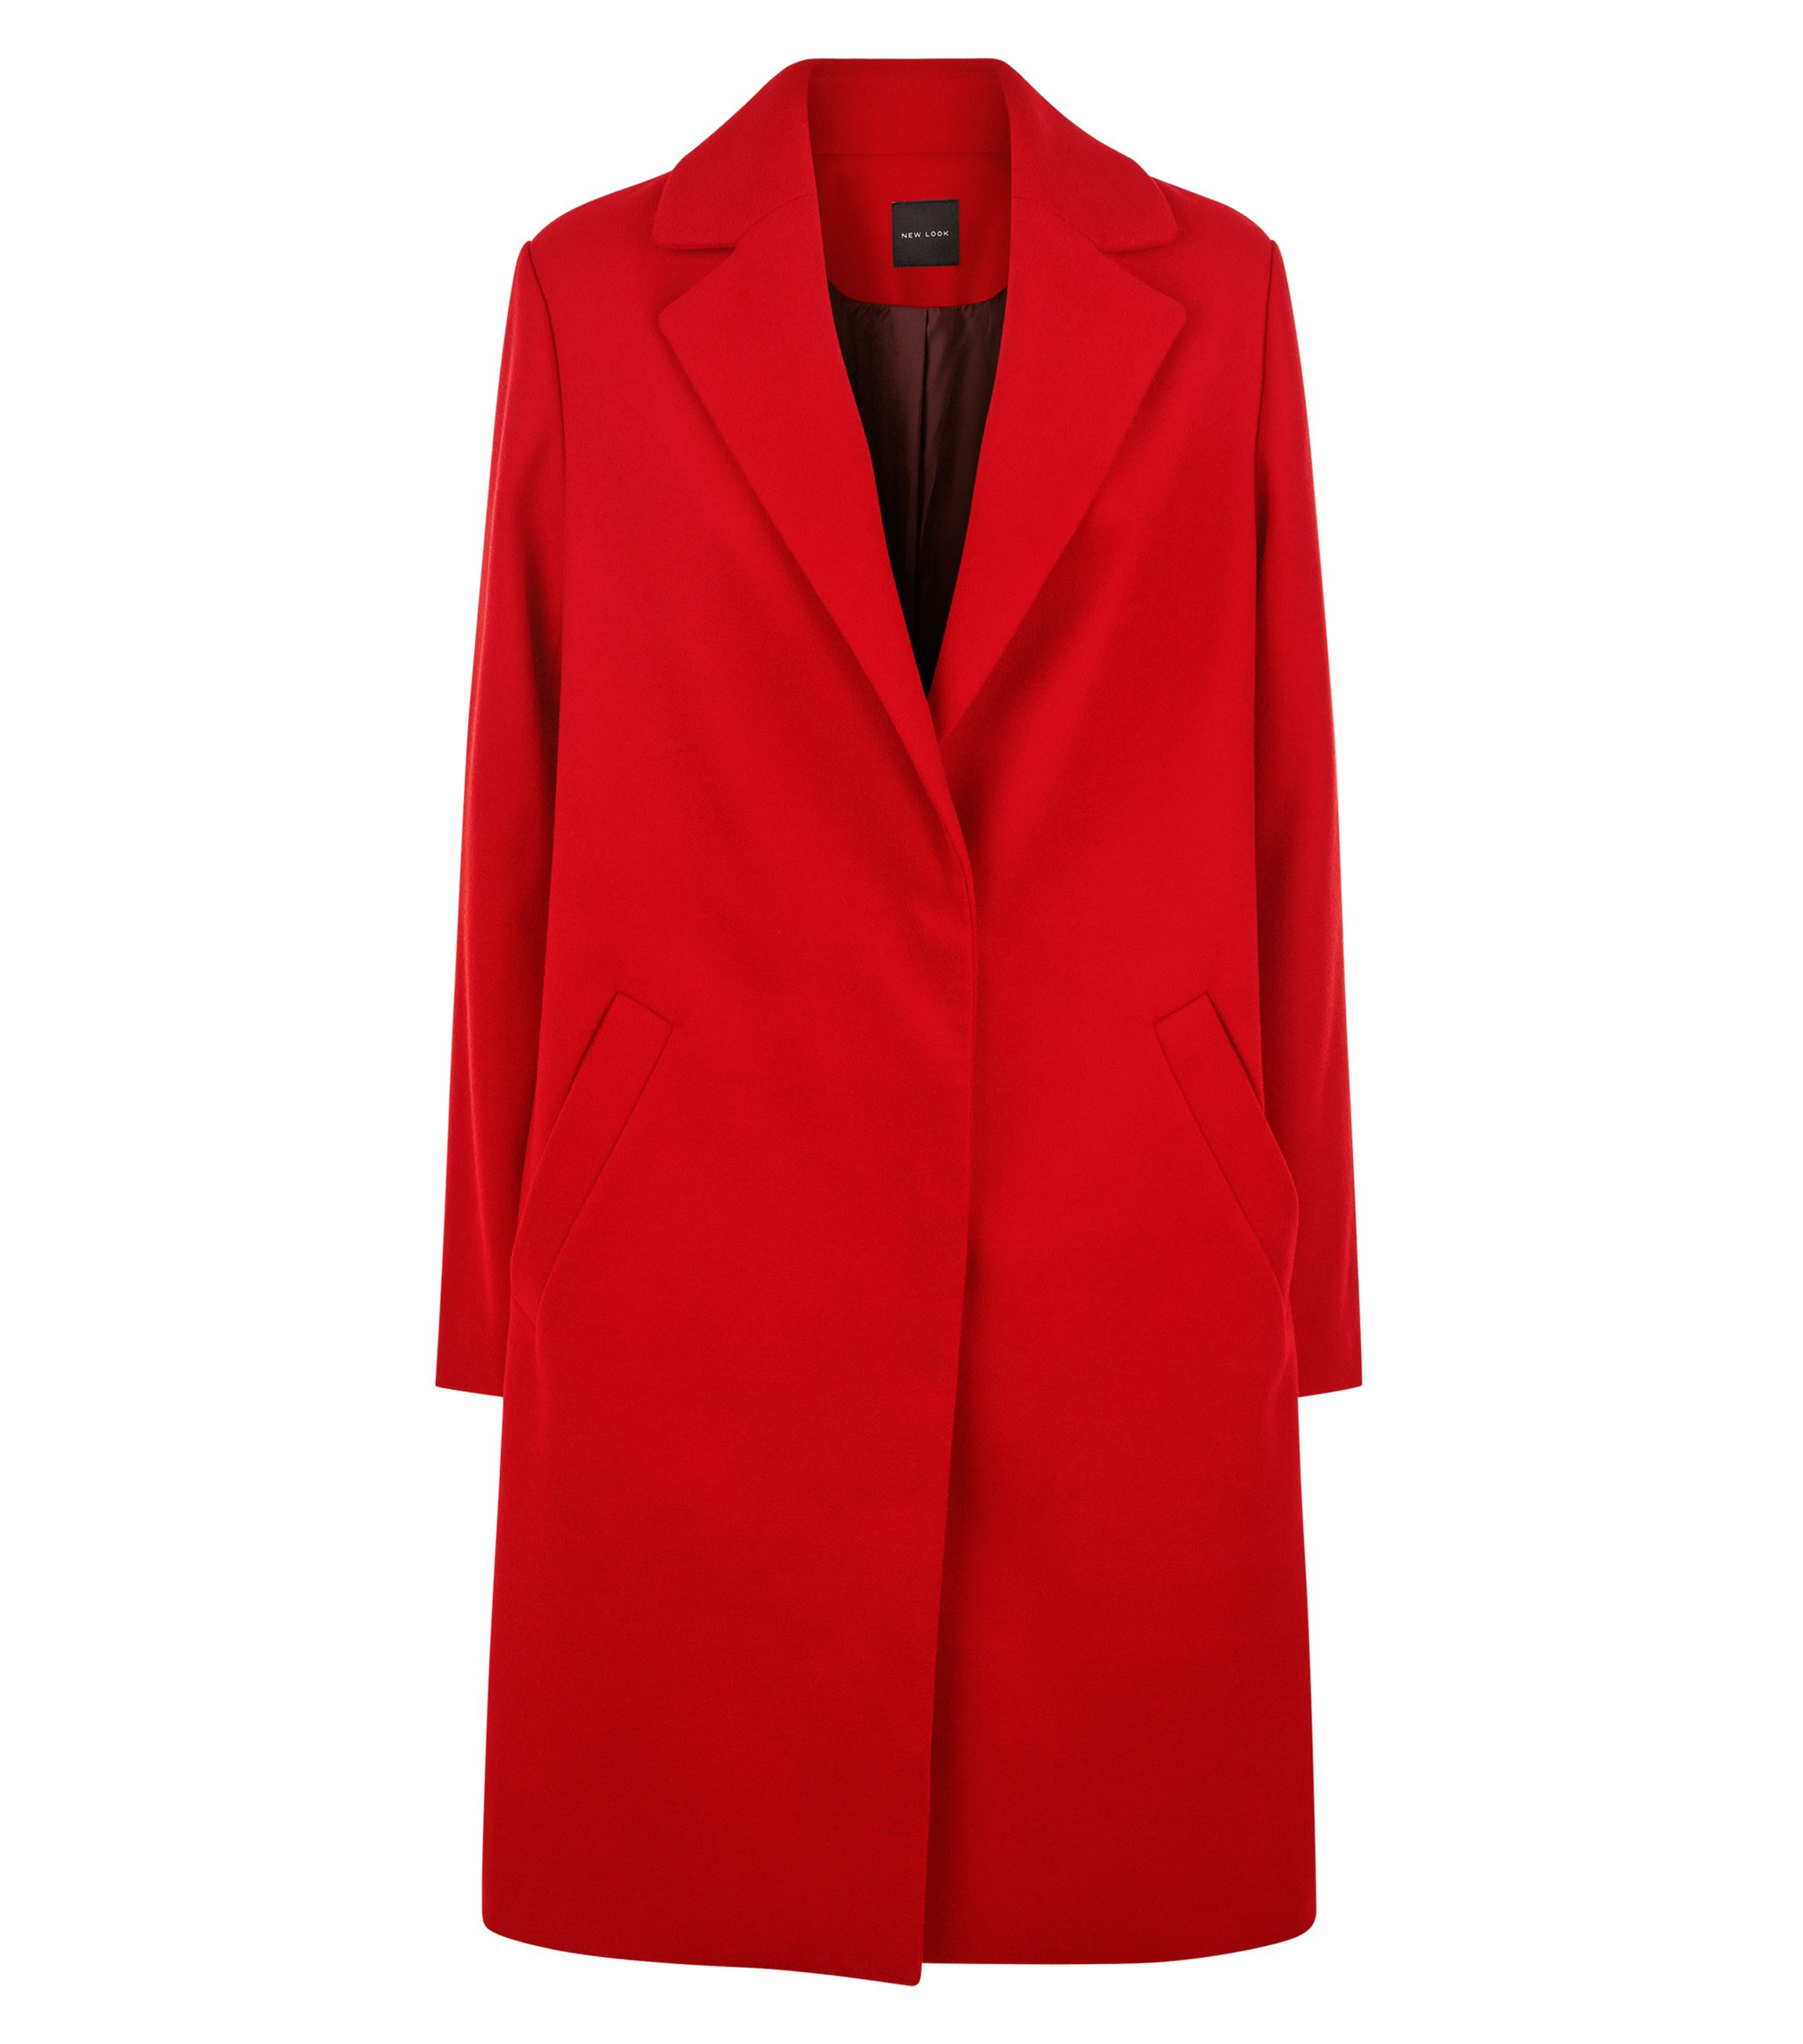 New Look Red Longline Collared Coat